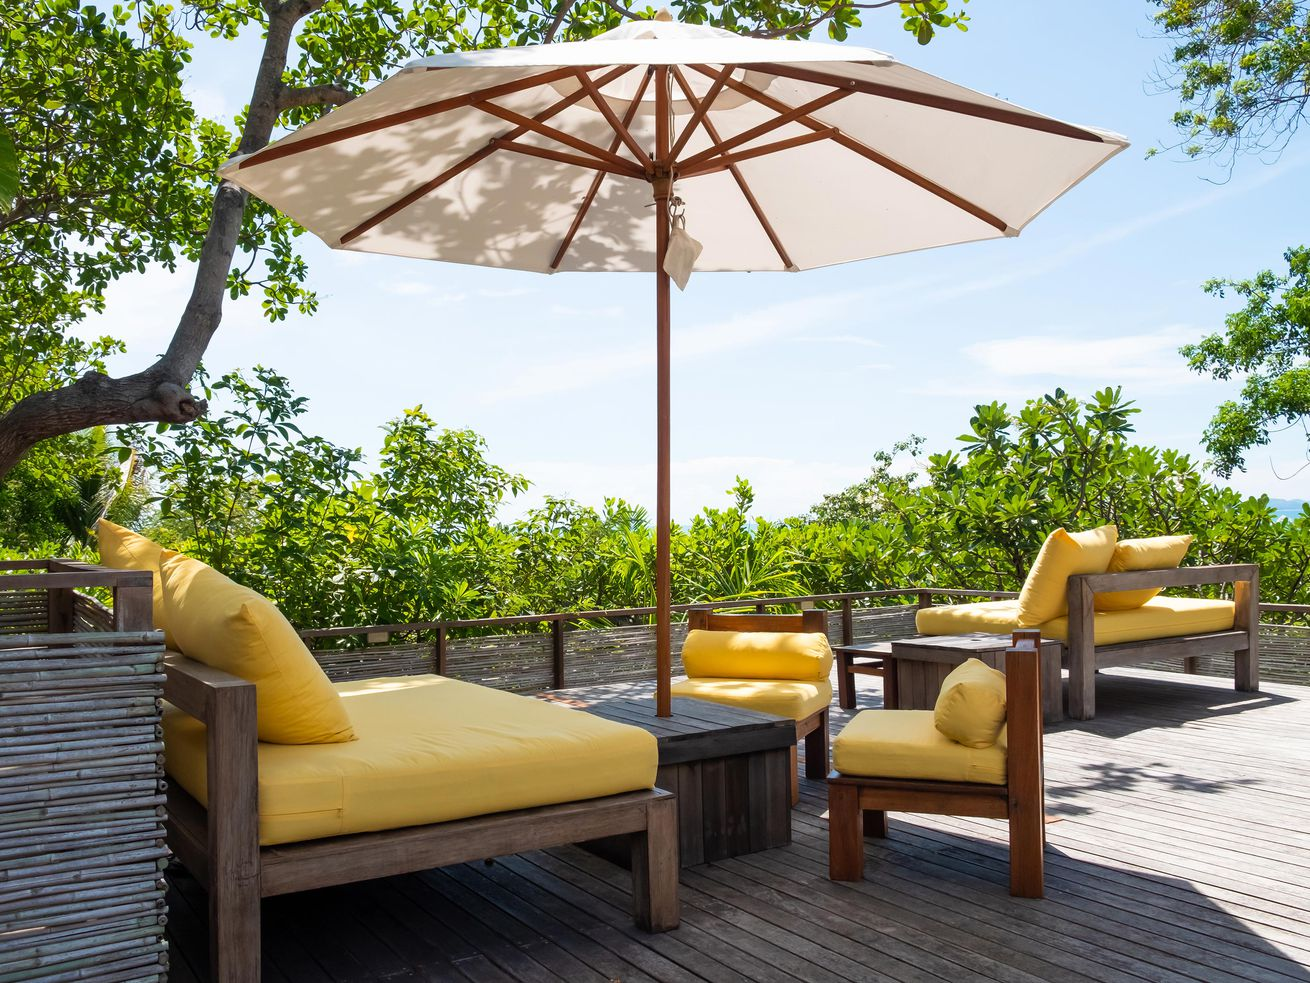 An outdoor seating area with a large white umbrella casting shade.